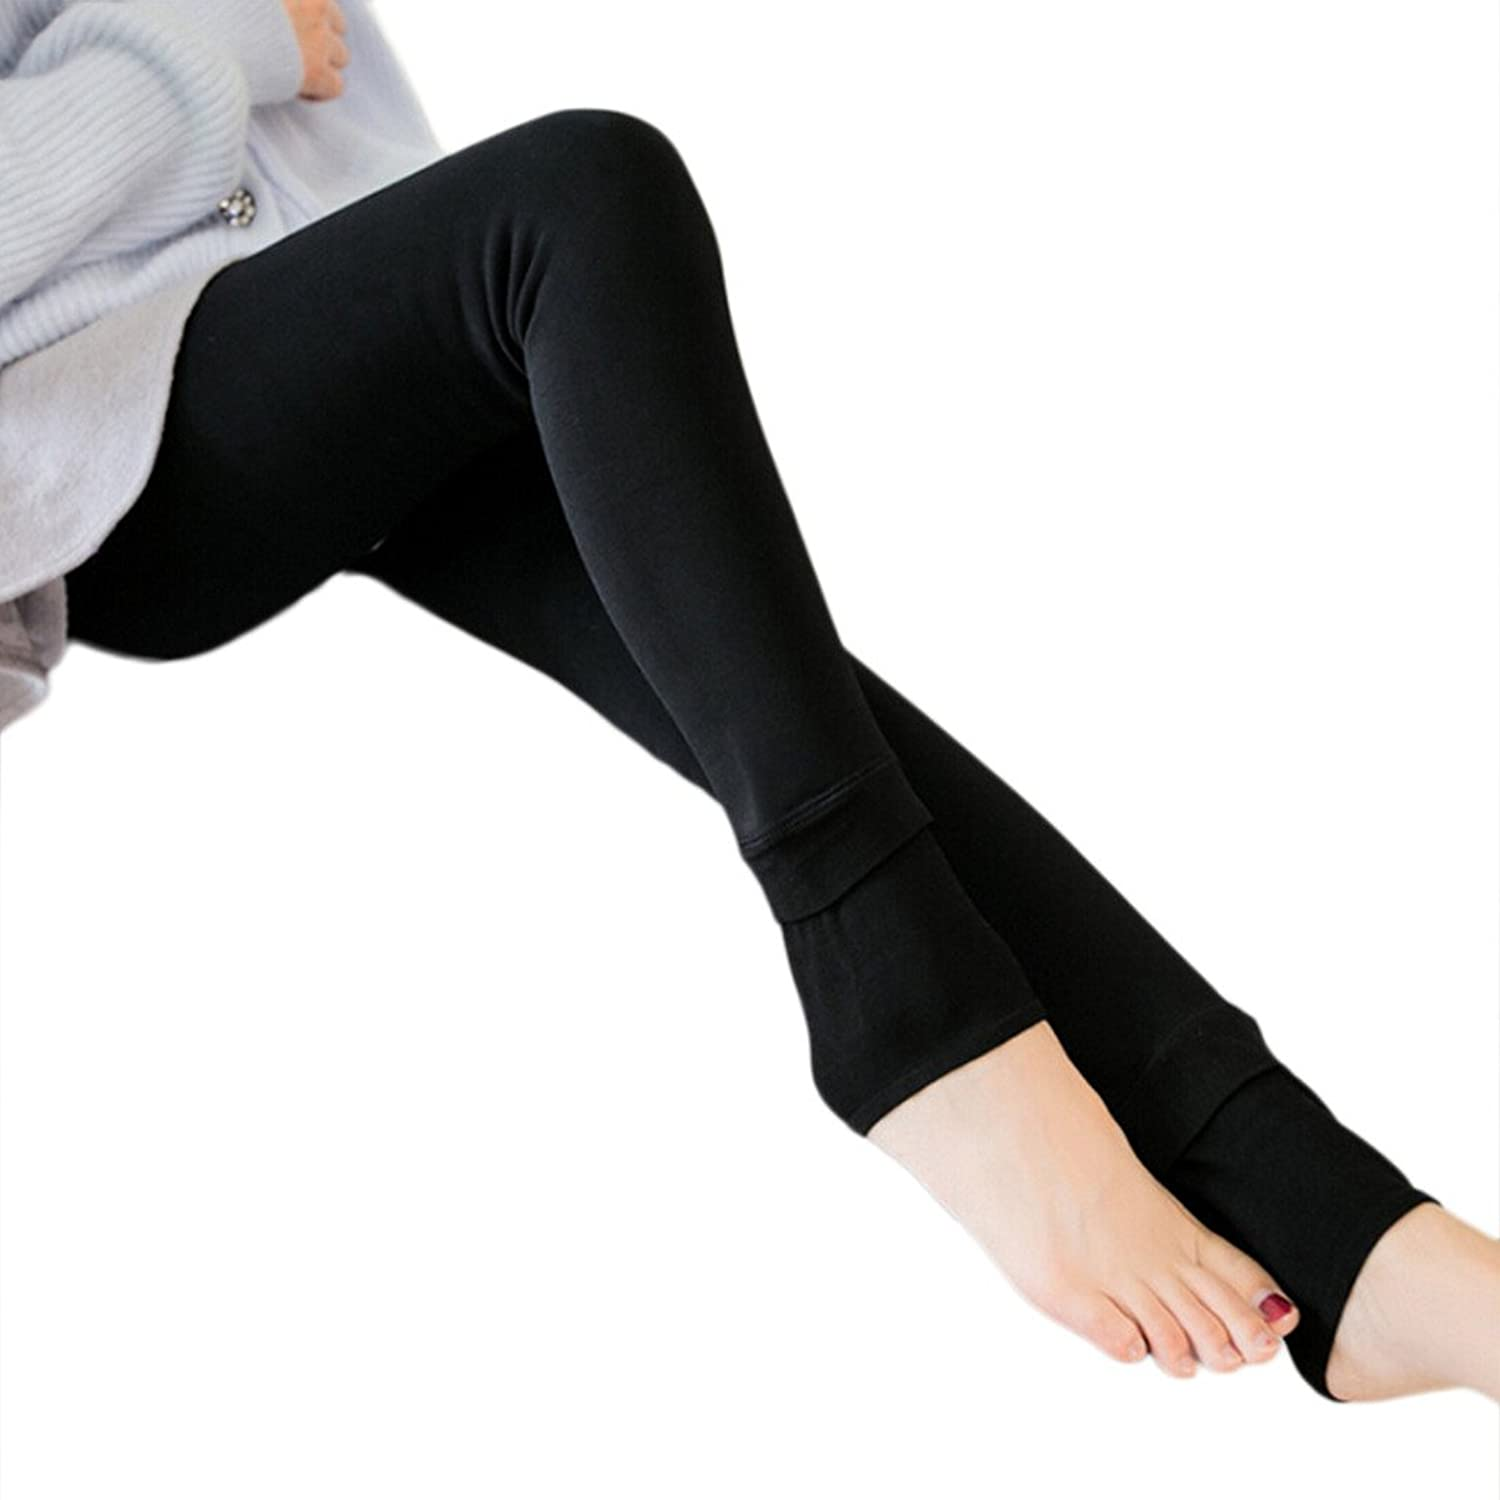 Warm winter fleece leggings